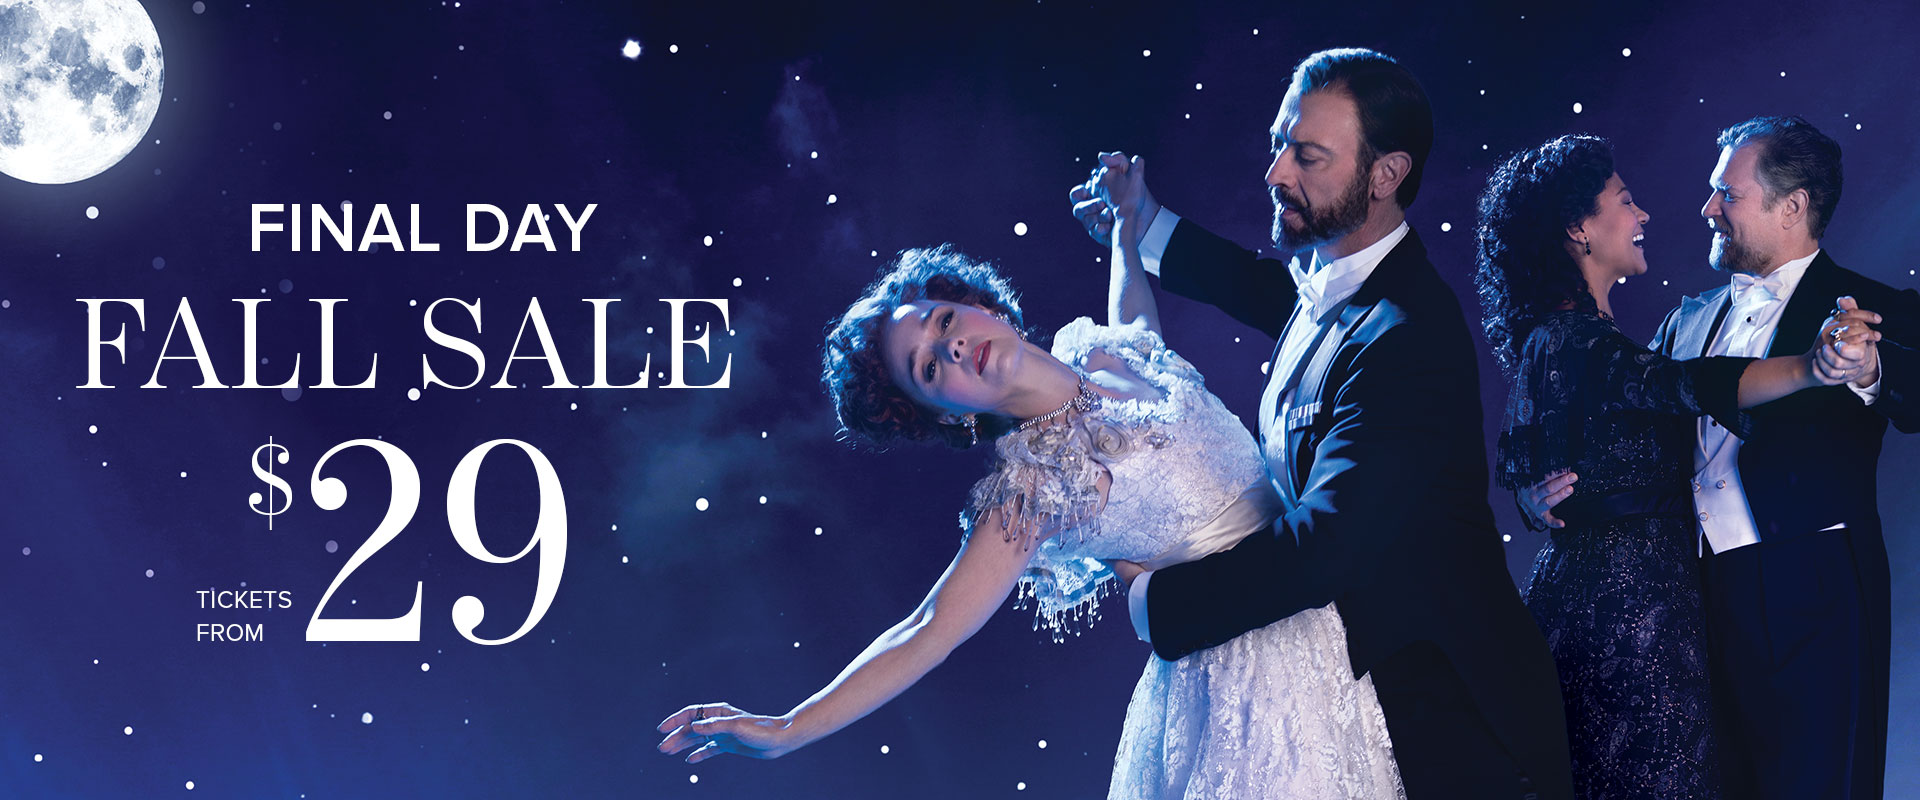 Publicity image from A Little Night Music